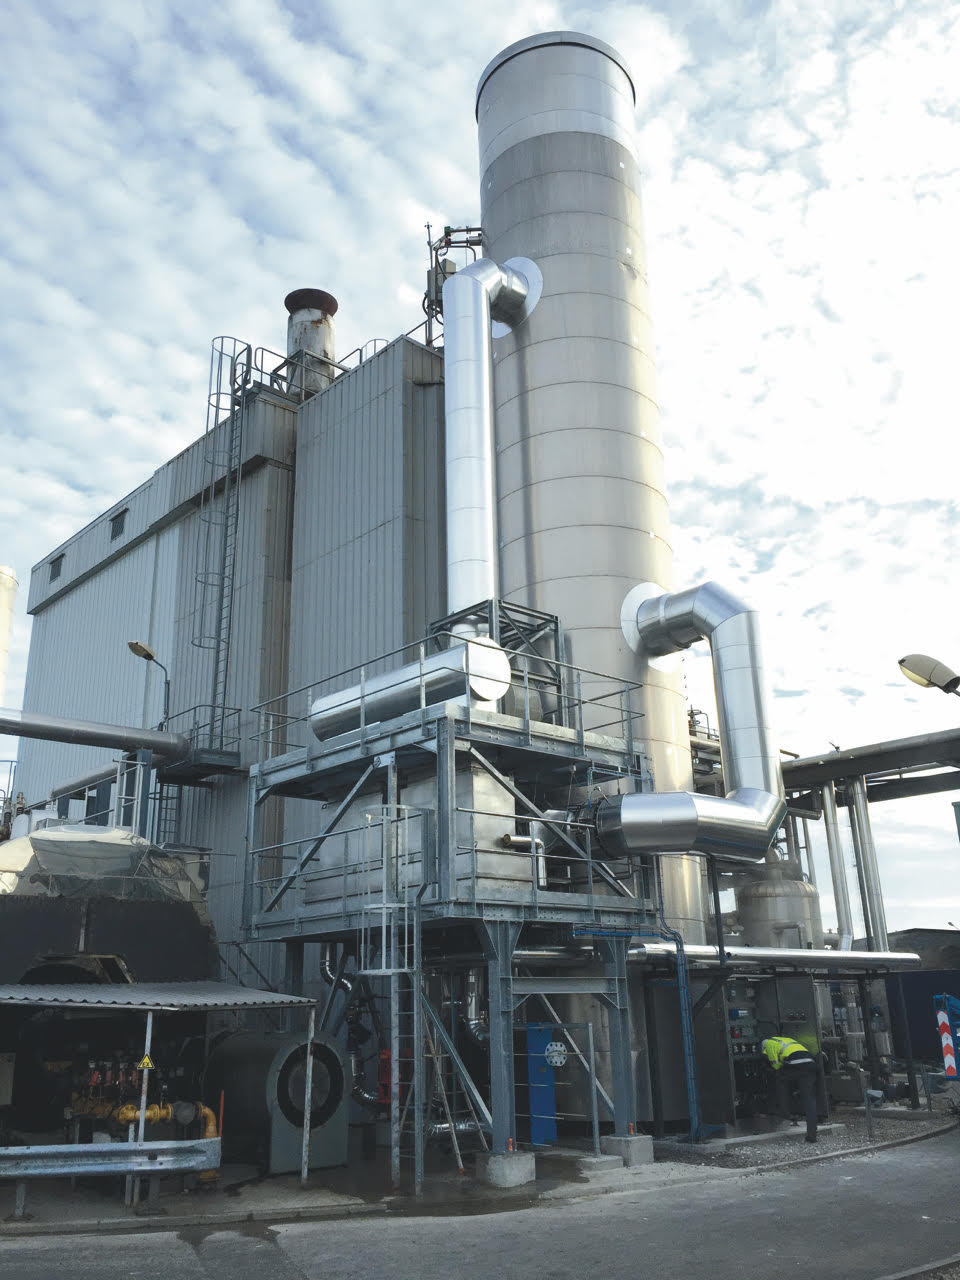 A Terraosave system installed in the boiler room of the Ajinomoto factory in Amiens - Credits: Terraosave